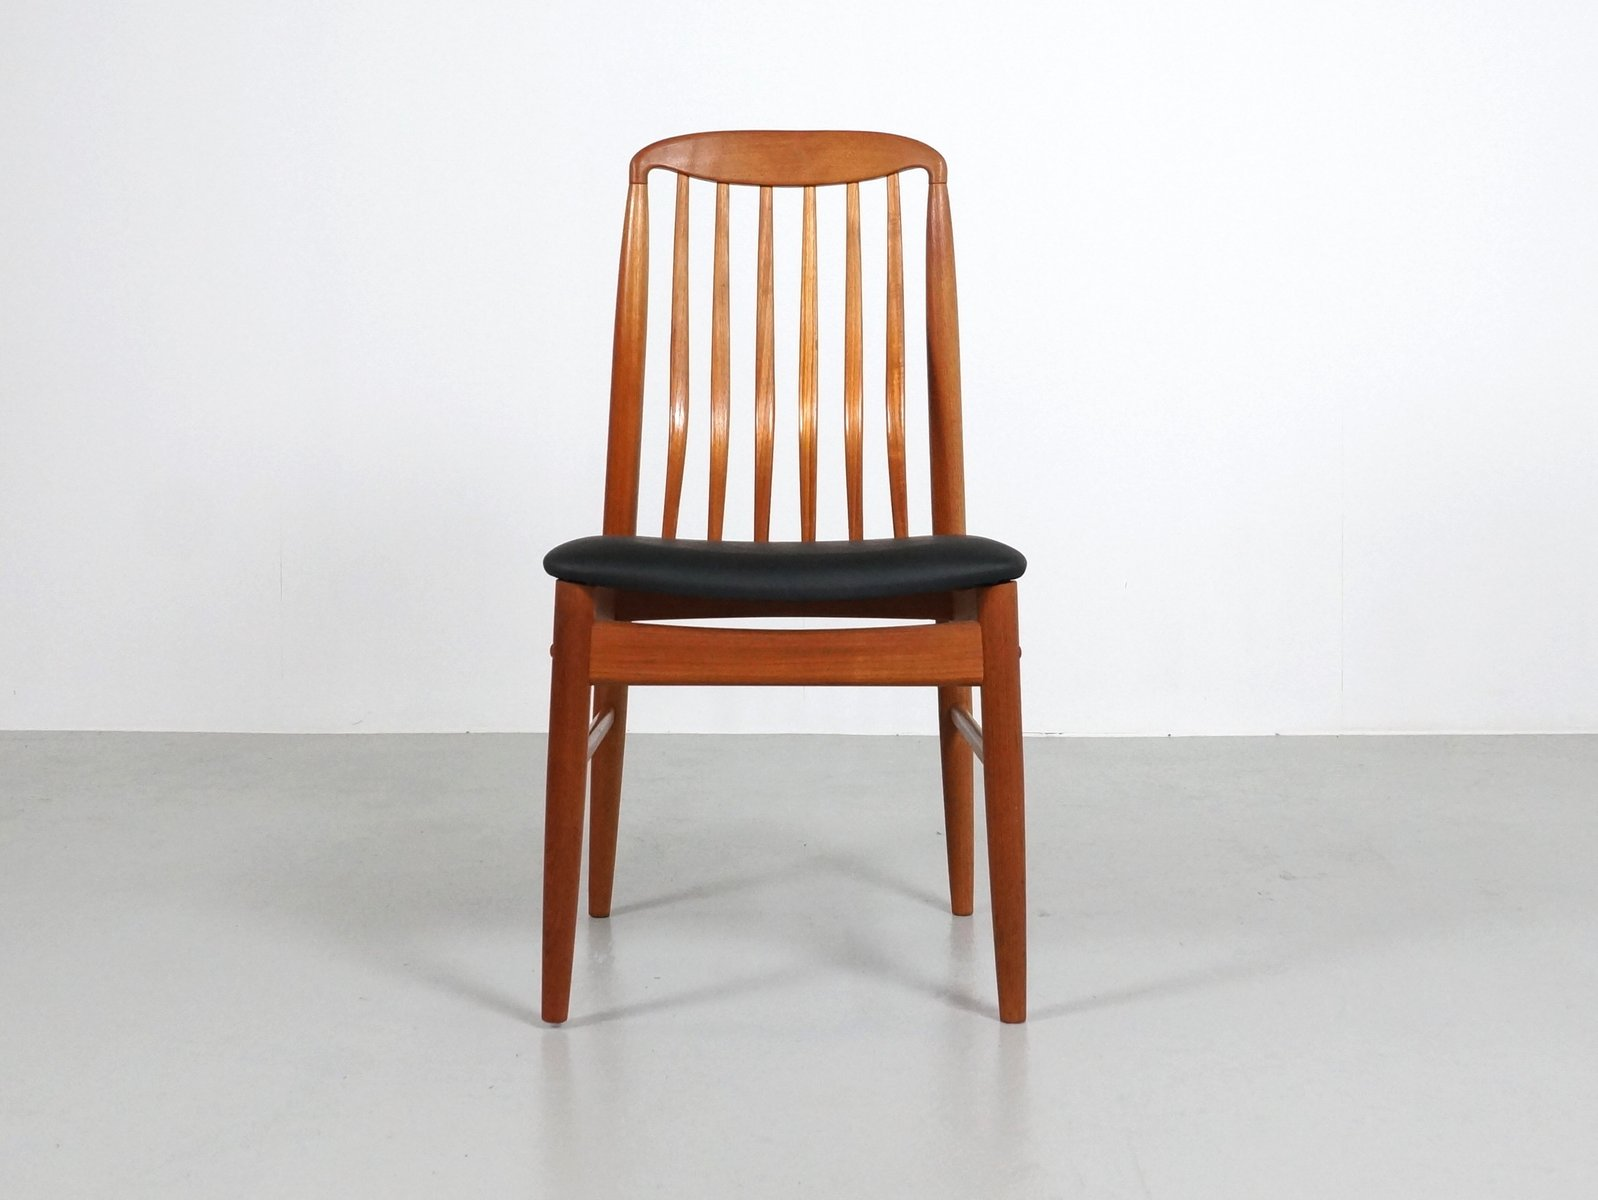 Thai Teak Dining Chairs By Benny Linden 1970s Set Of 6